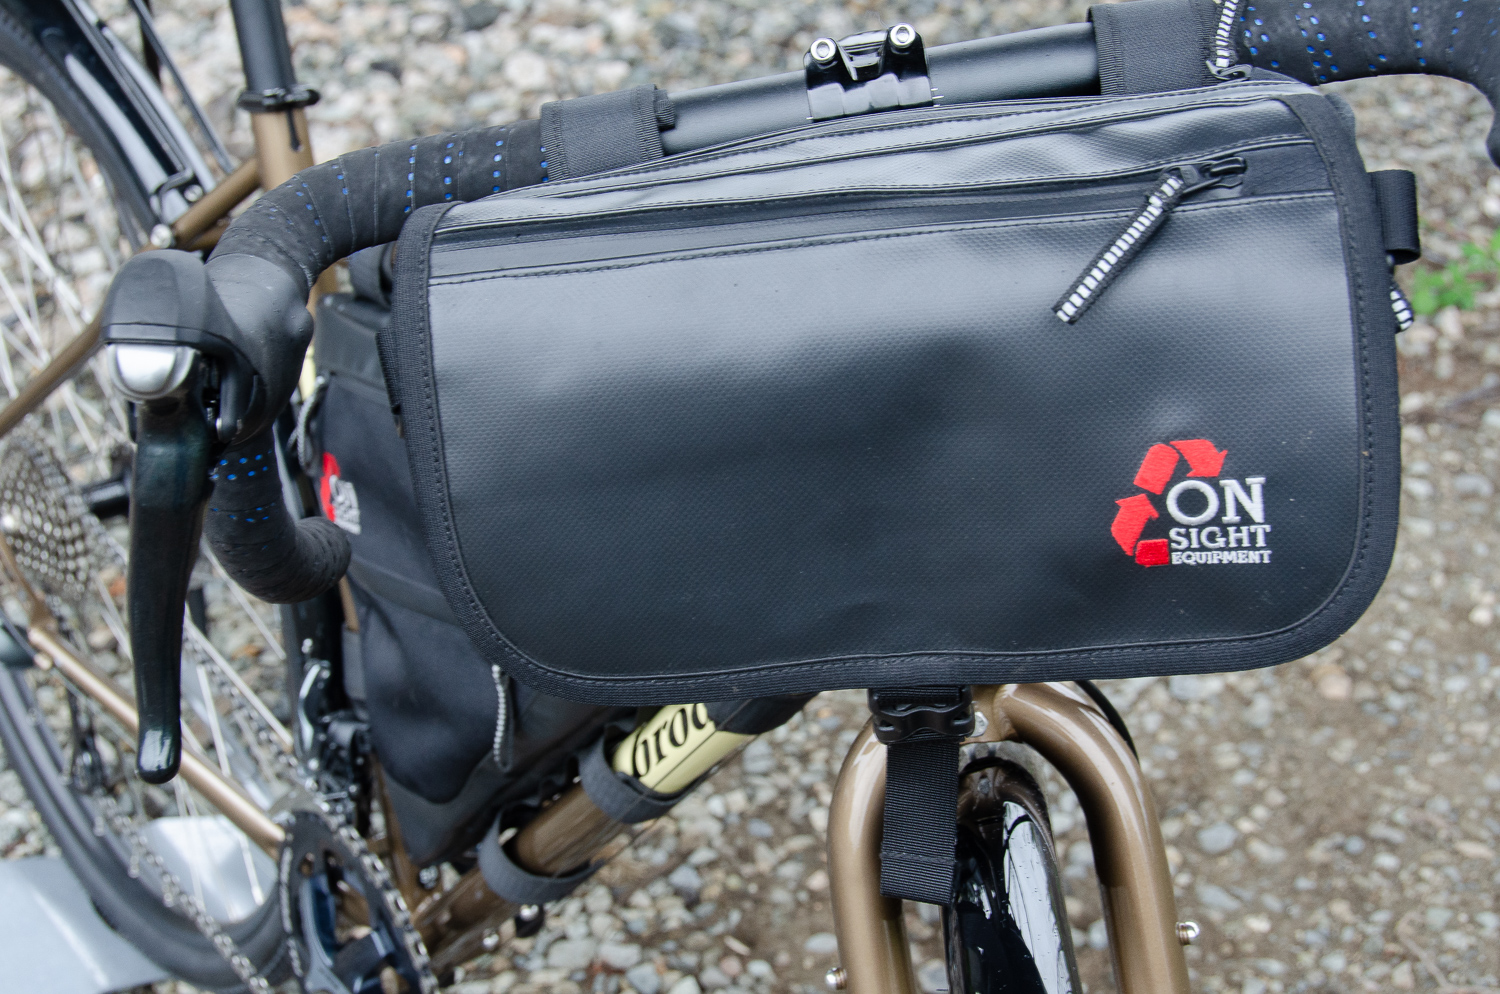 Elan with ONSight handlebar bag.jpg